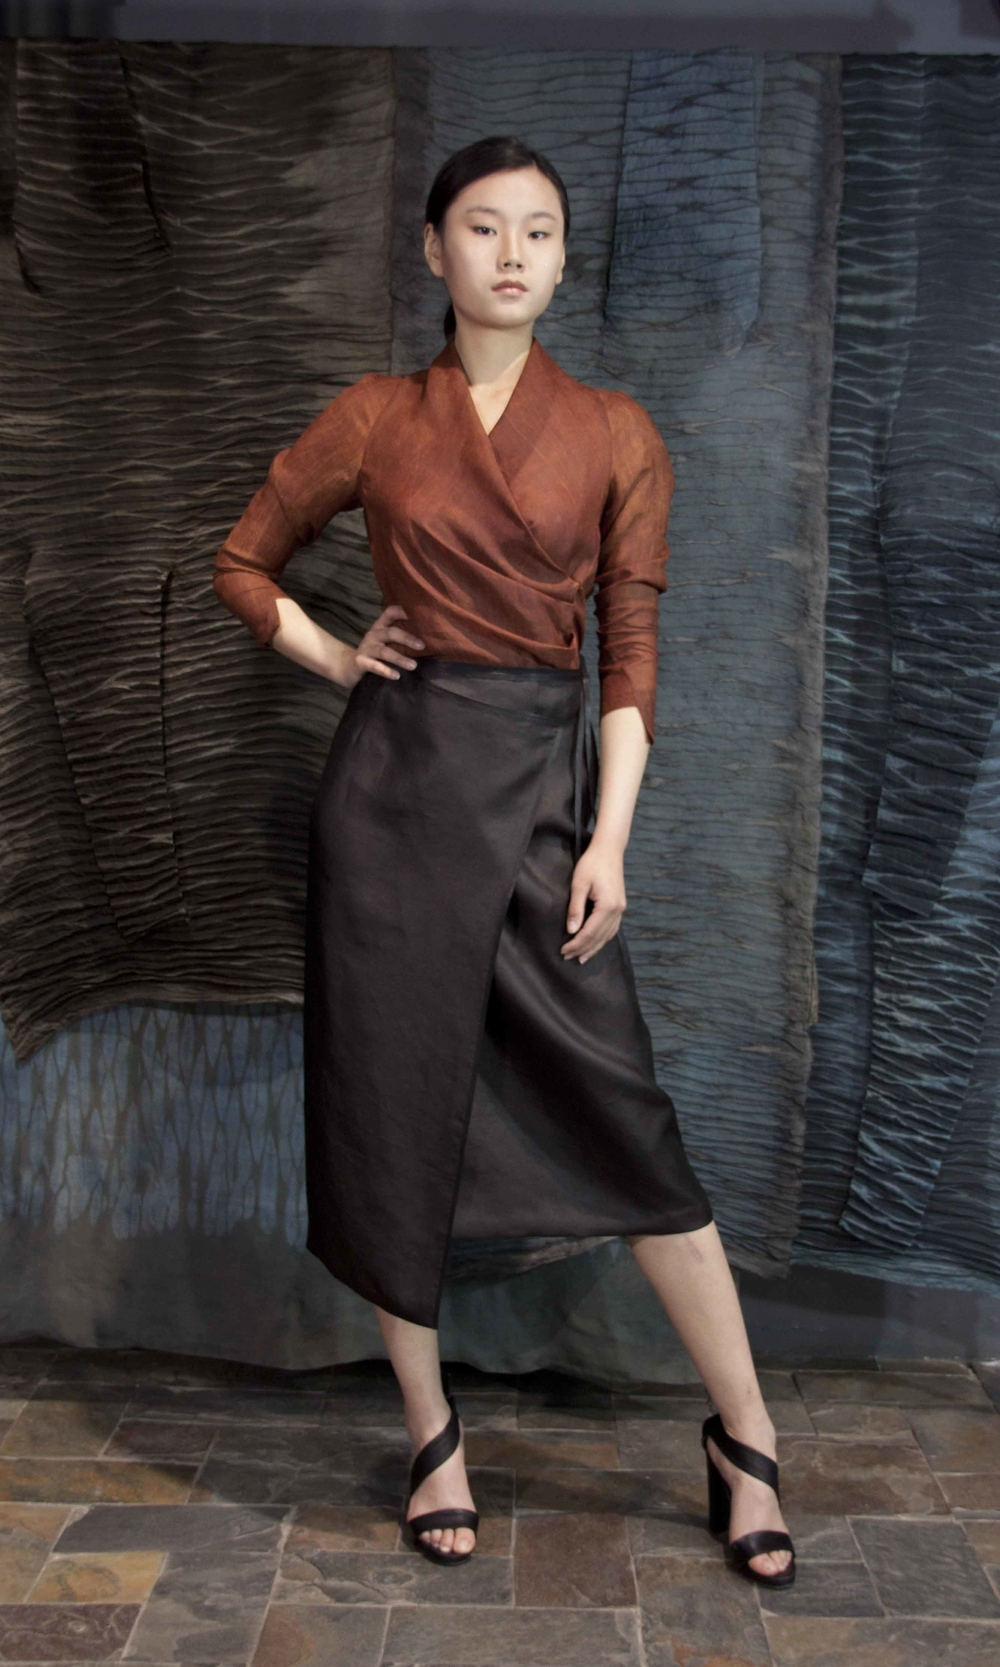 "28-21 Wrap-around red-tea-silk blouse/ Wrap-around asymmetric tea-silk skirt  /    红芸纱腰部压褶女式衬衫  /  香云纱不对称裹式系皮鞭腰带款半身裙子                                                                                                                                                                                                                                                                                                   /* Style Definitions */  table.MsoNormalTable 	{mso-style-name:""Table Normal""; 	mso-tstyle-rowband-size:0; 	mso-tstyle-colband-size:0; 	mso-style-noshow:yes; 	mso-style-priority:99; 	mso-style-qformat:yes; 	mso-style-parent:""""; 	mso-padding-alt:0in 5.4pt 0in 5.4pt; 	mso-para-margin-top:0in; 	mso-para-margin-right:0in; 	mso-para-margin-bottom:10.0pt; 	mso-para-margin-left:0in; 	line-height:115%; 	mso-pagination:widow-orphan; 	font-size:11.0pt; 	font-family:""Calibri"",""sans-serif""; 	mso-ascii-font-family:Calibri; 	mso-ascii-theme-font:minor-latin; 	mso-hansi-font-family:Calibri; 	mso-hansi-theme-font:minor-latin; 	mso-bidi-font-family:""Times New Roman""; 	mso-bidi-theme-font:minor-bidi;}"